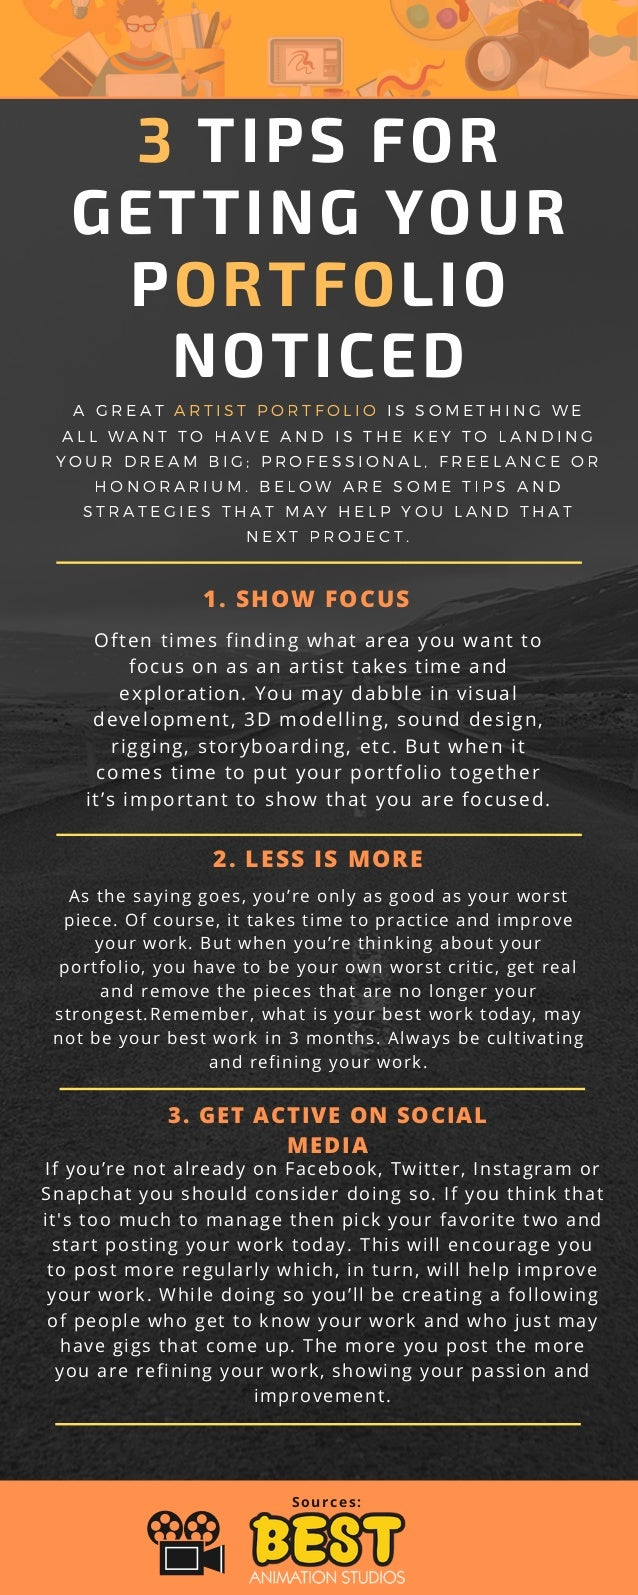 20 Tips for Getting your Portfolio Noticed